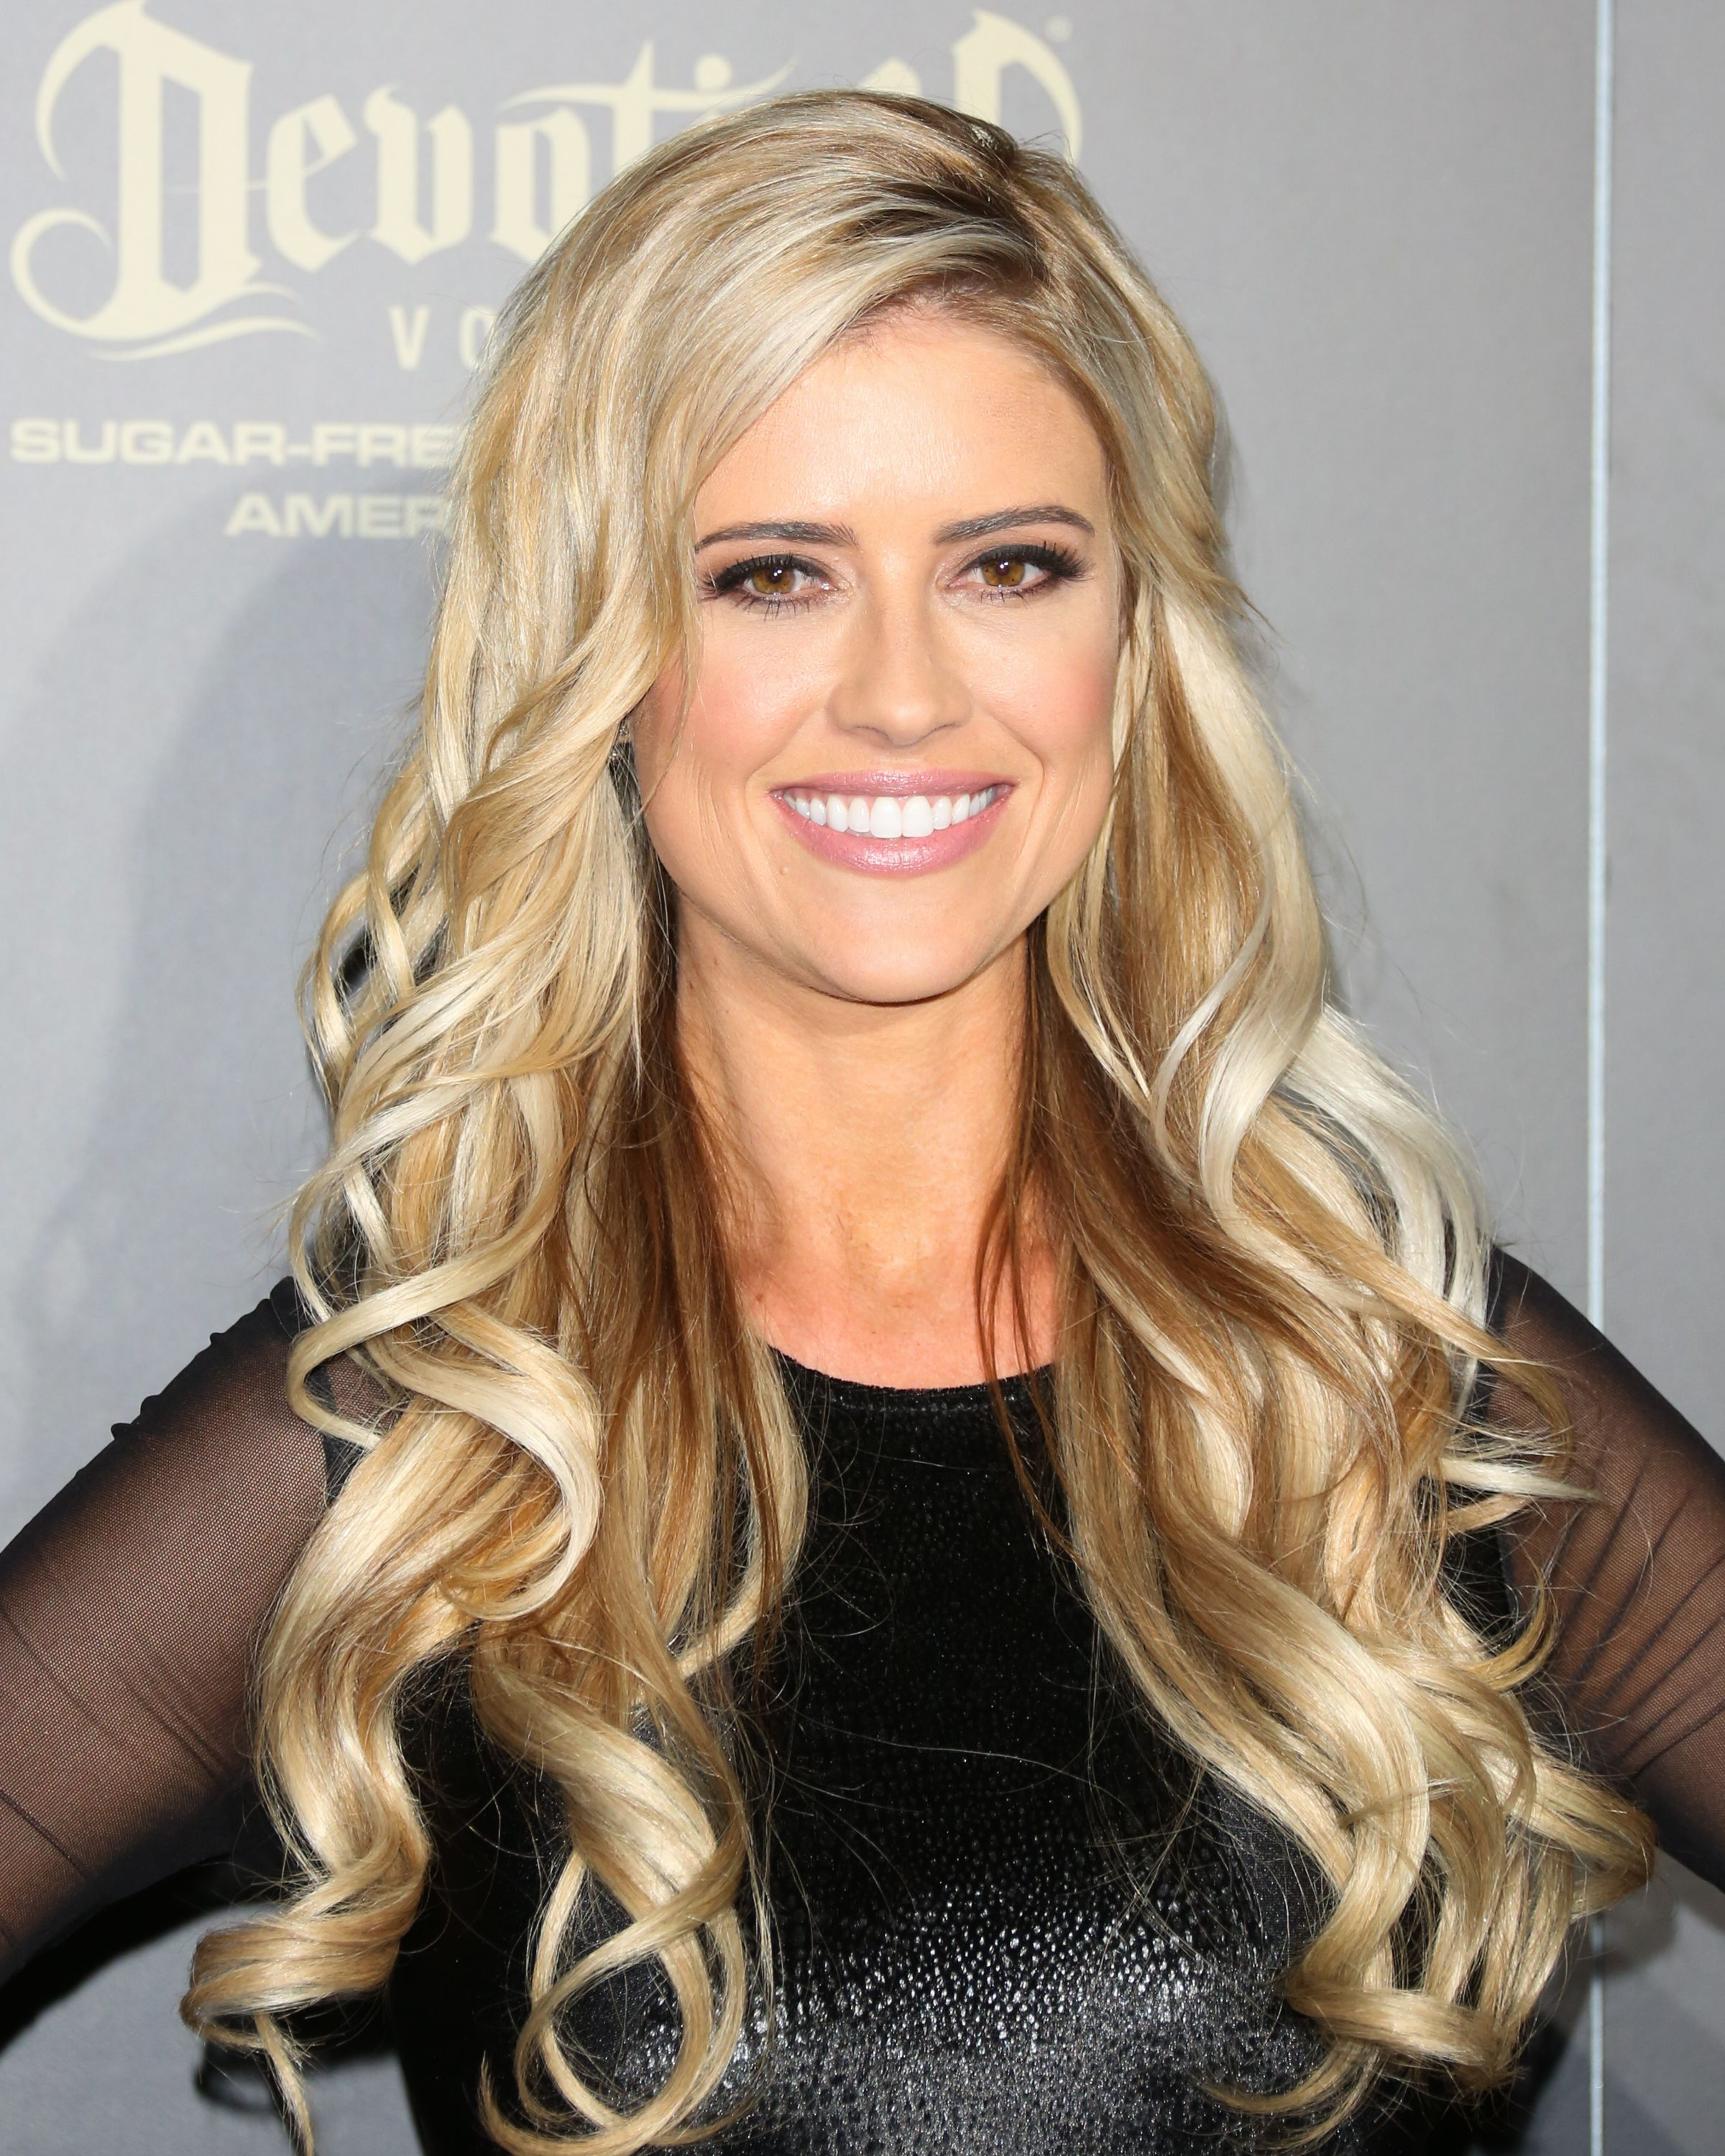 christina El Moussa smiling for a picture with